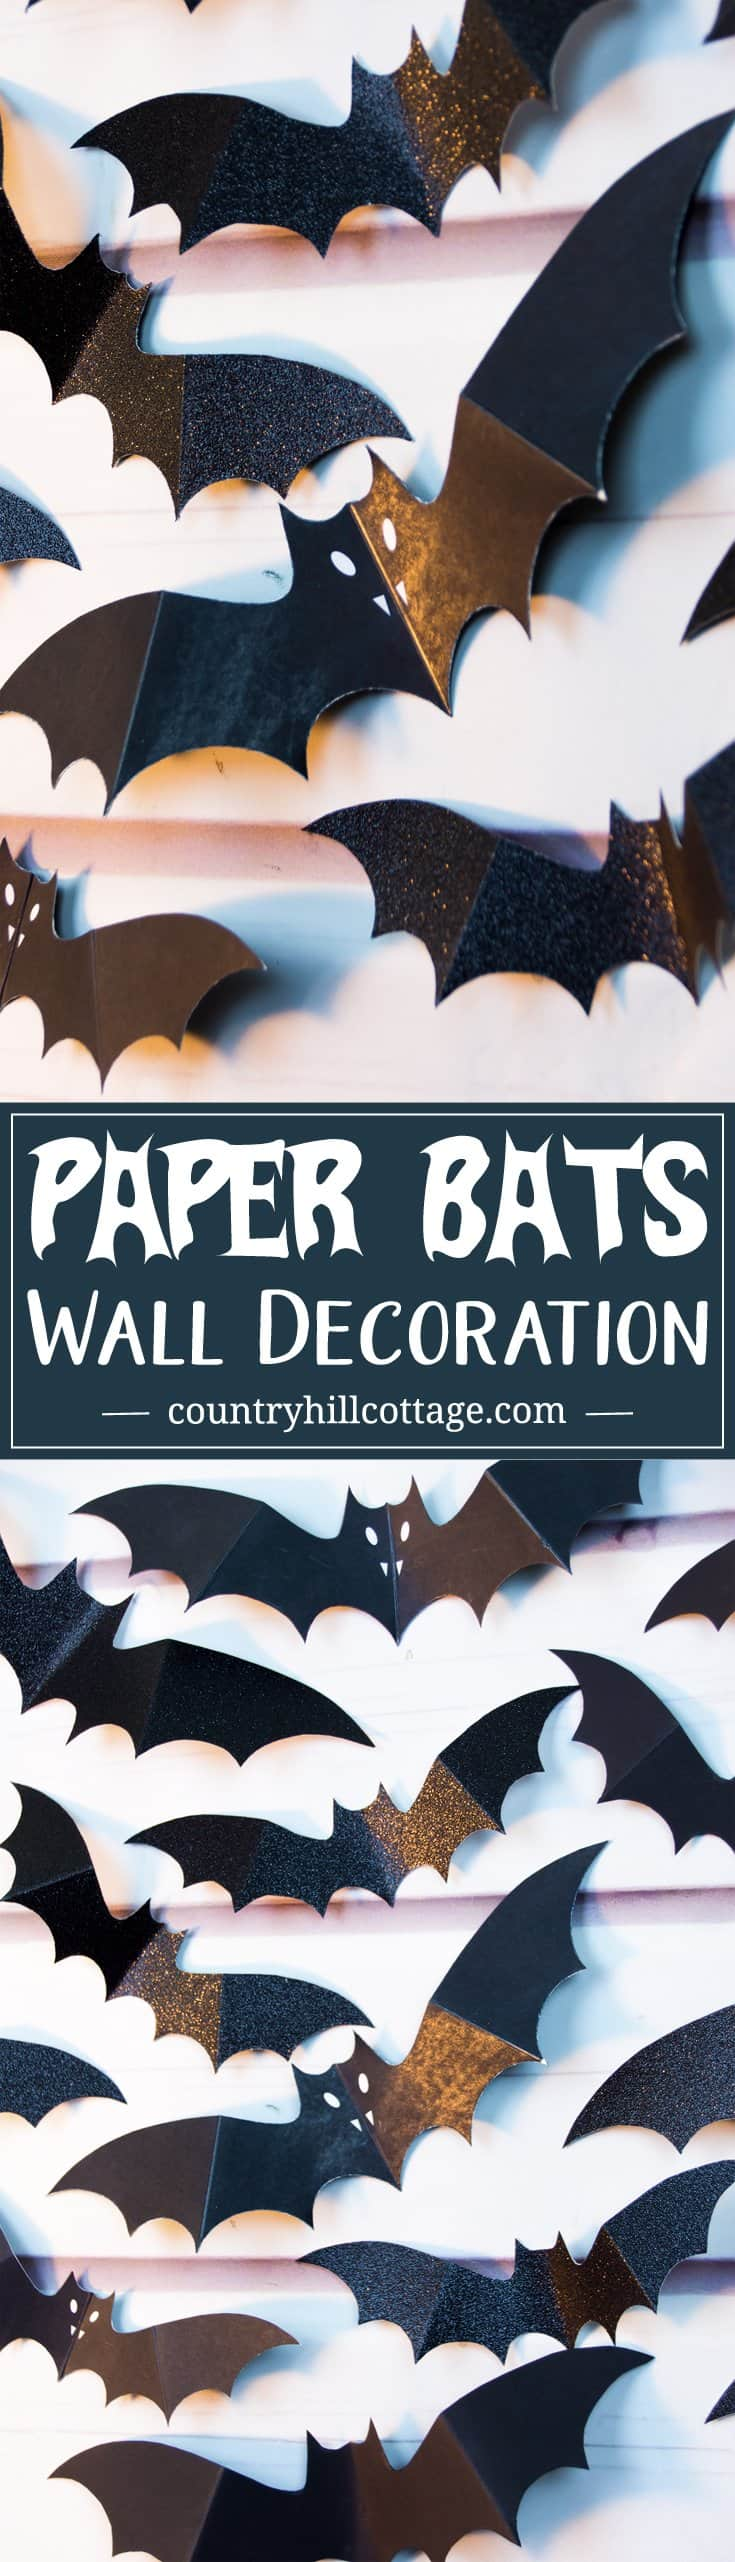 Swarm of Paper Bats DIY Halloween Wall Decoration. Visit our blog to download a free printable template to create the paper bats. #halloween #diy #papercrafts| countryhillcottage.com